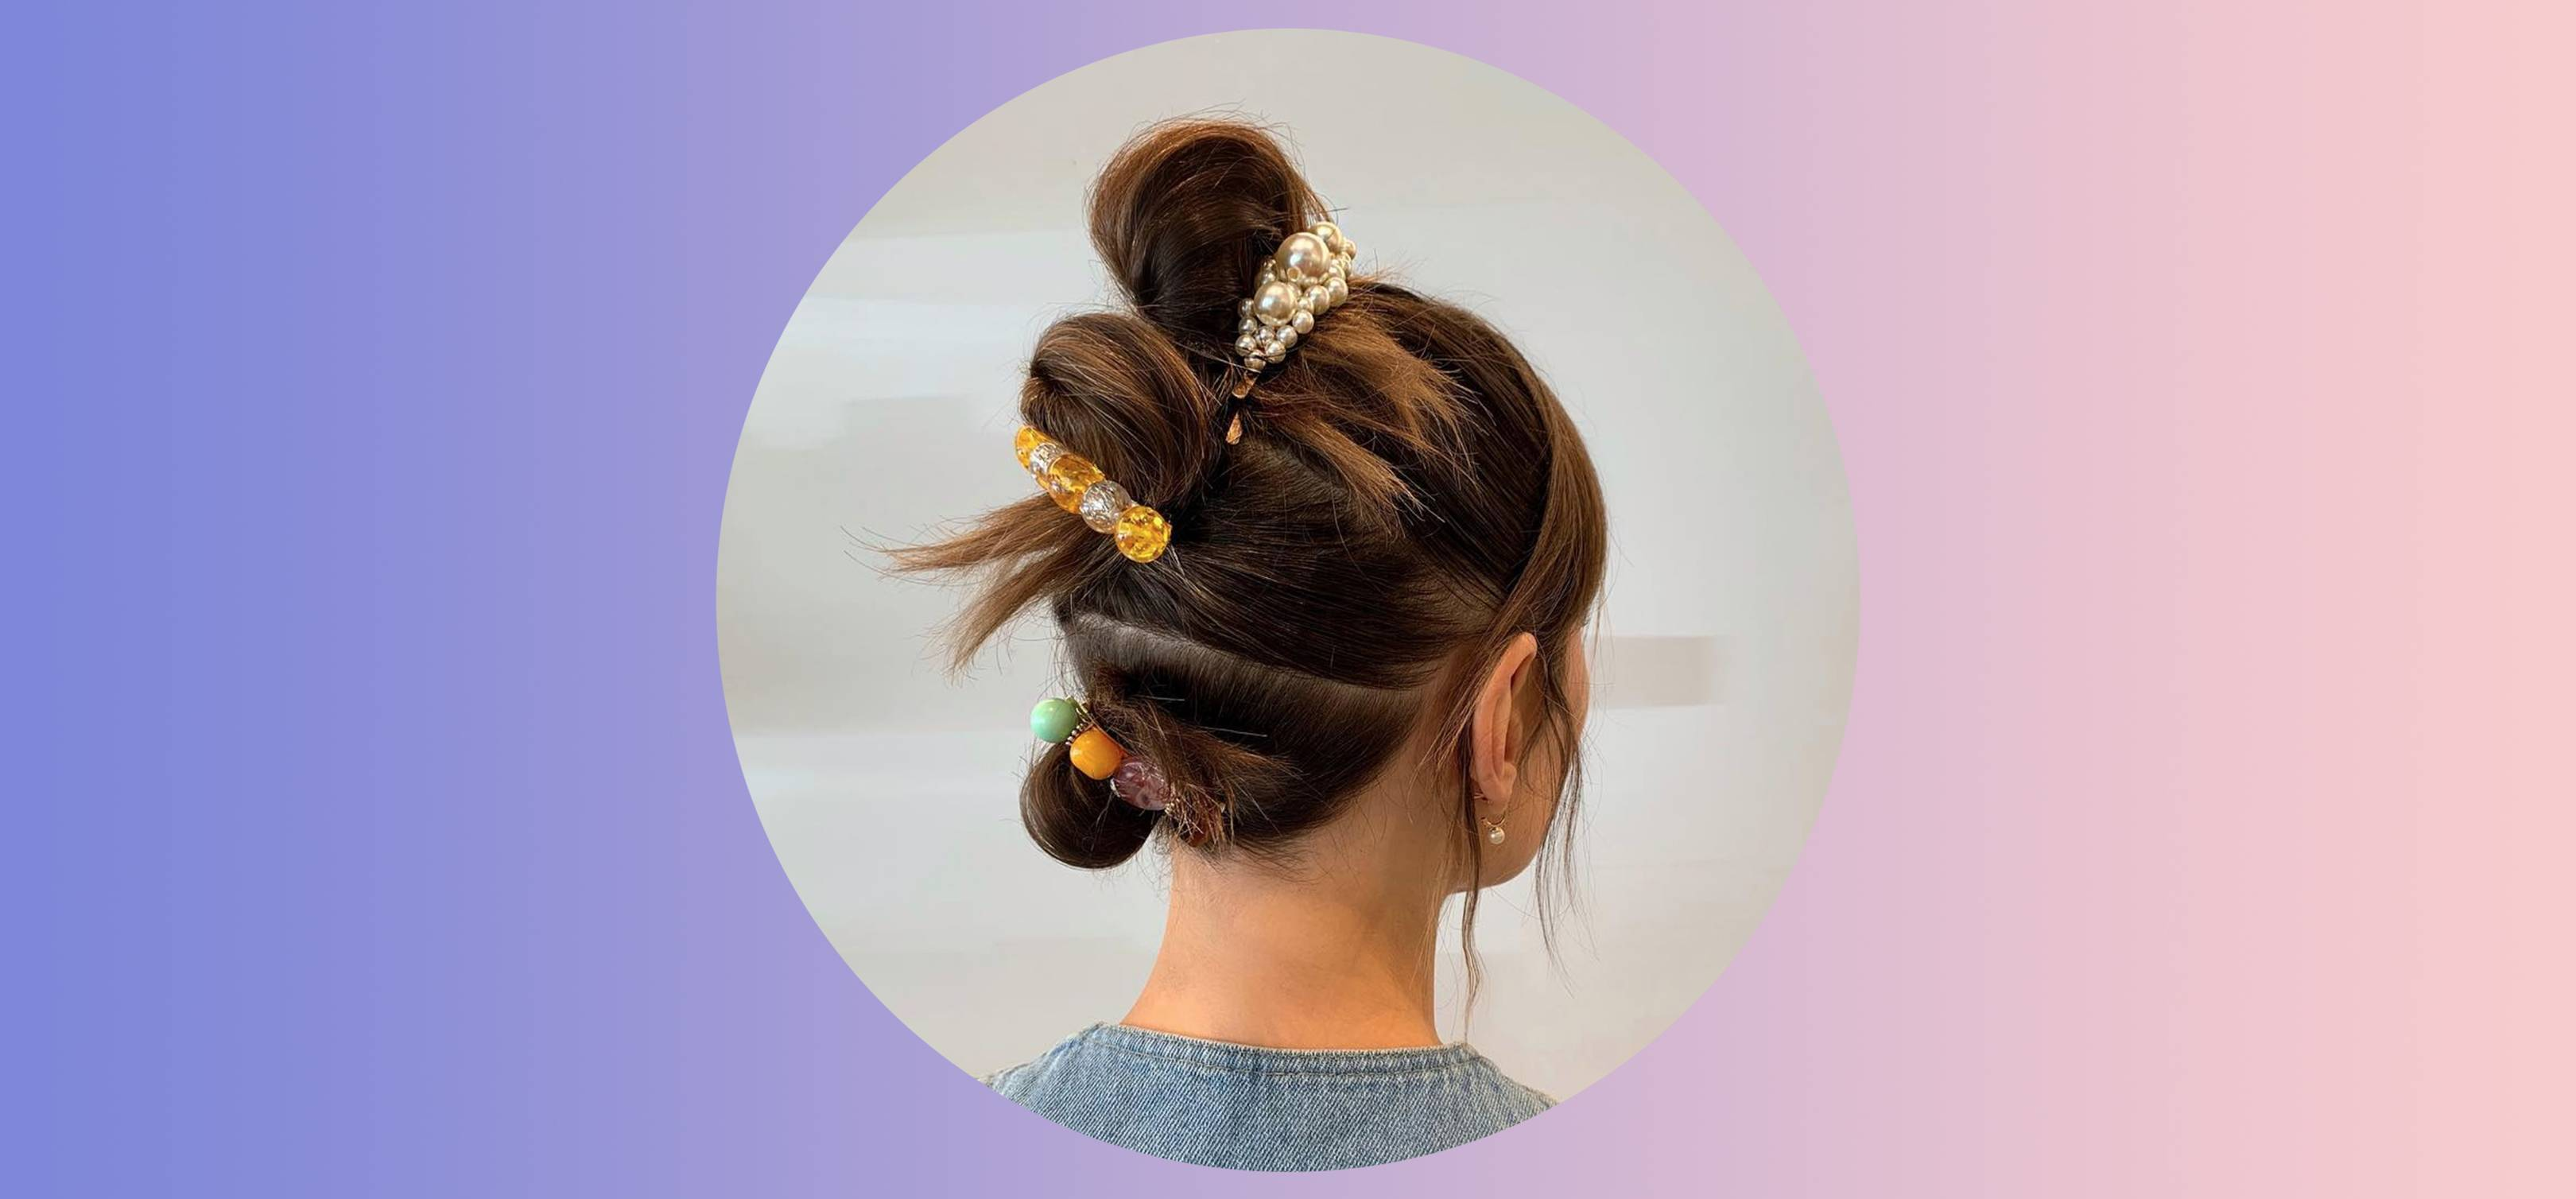 Hairstyles 2019 Hair Ideas Cut And Colour Inspiration Glamour Uk